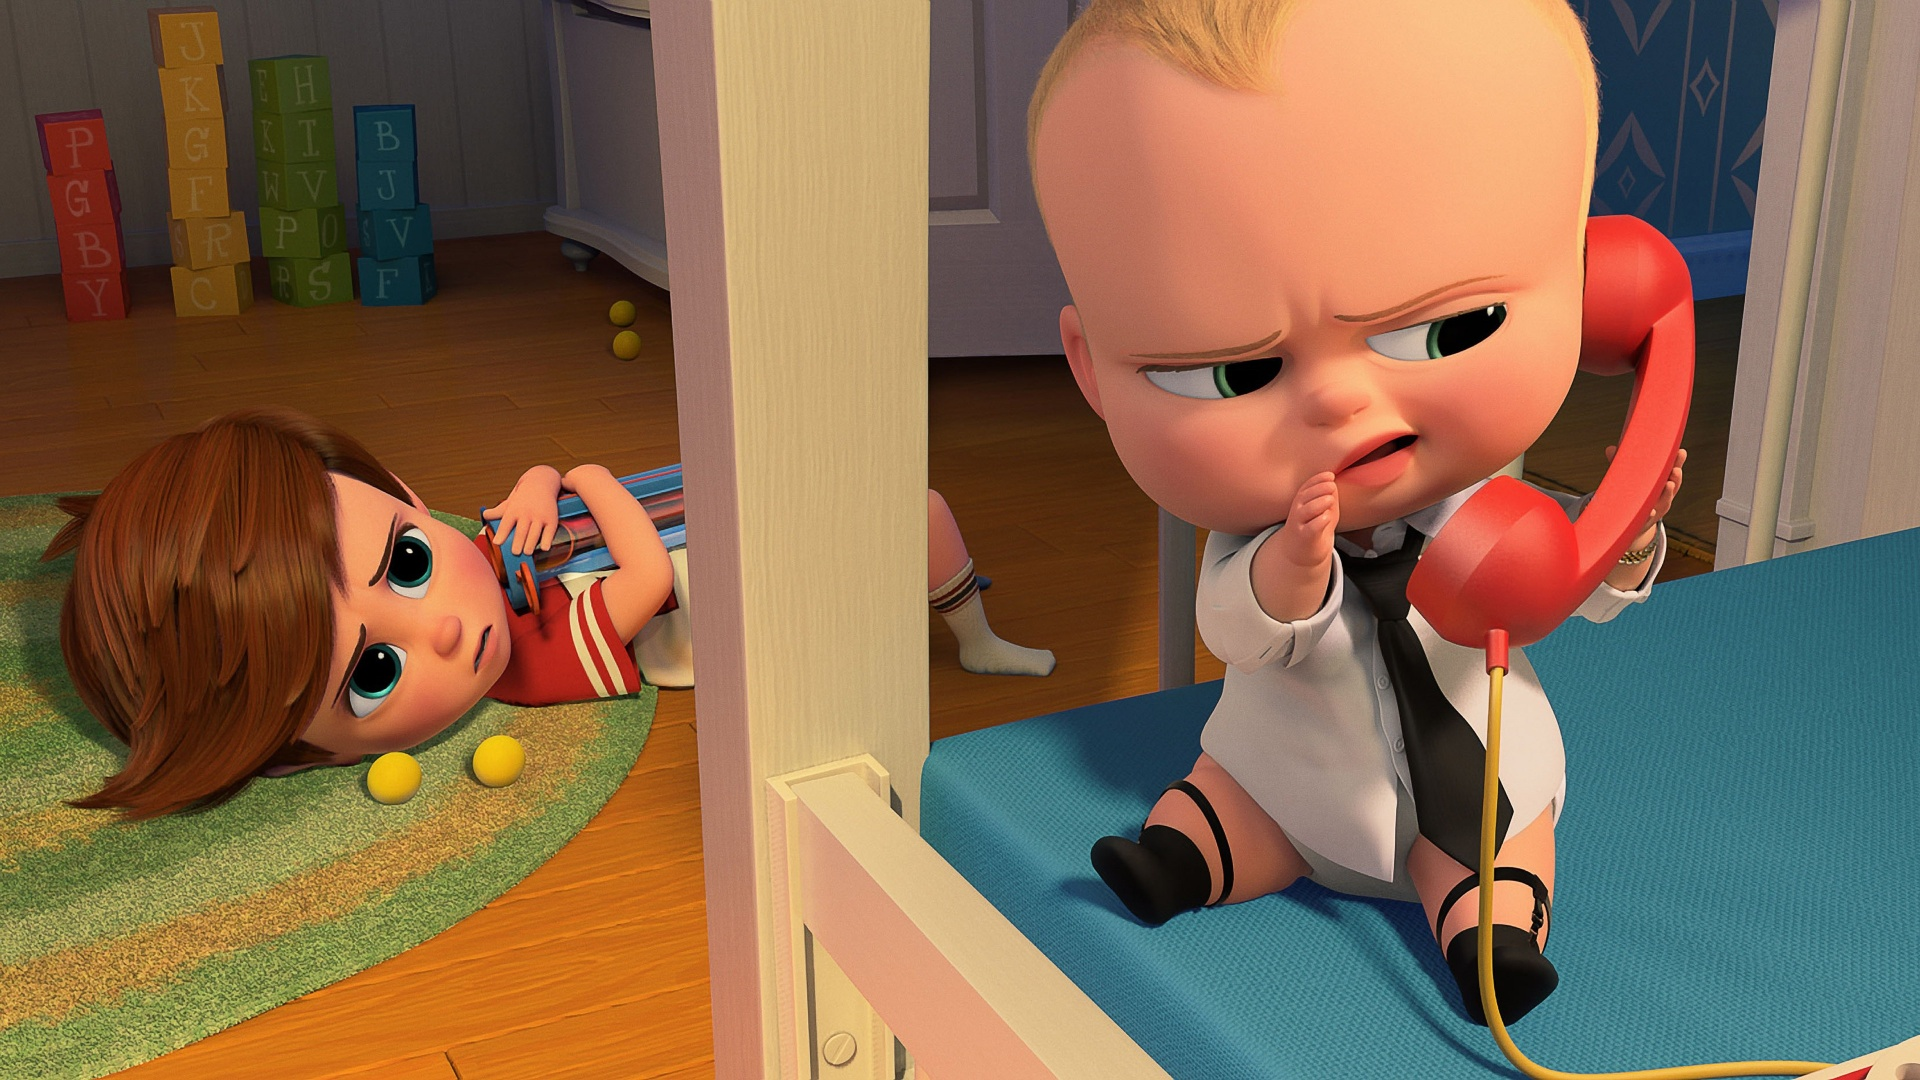 The Boss Baby Movie Stills Wallpapers 1920x1080 677942